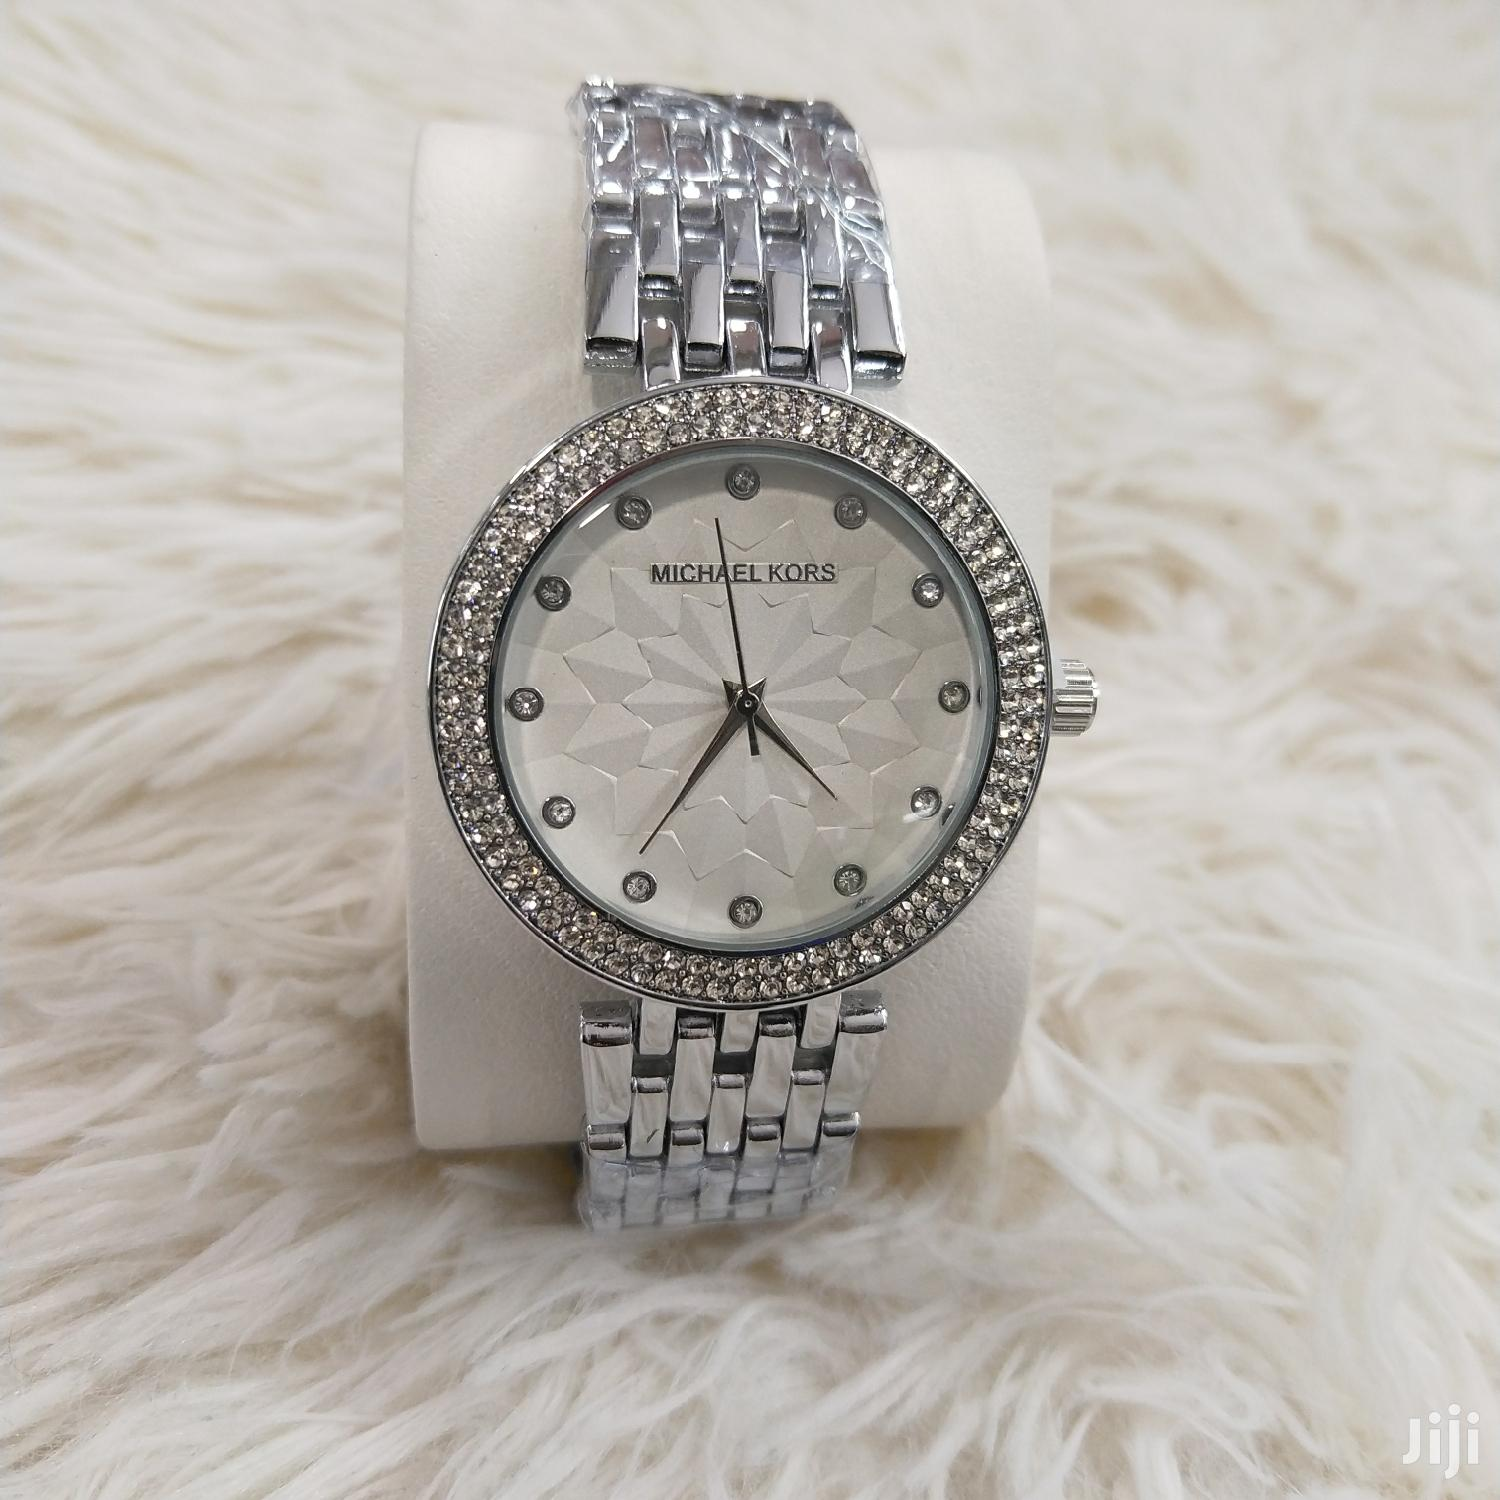 Michael Kors Ladies Watches in Stock | Watches for sale in Nairobi Central, Nairobi, Kenya